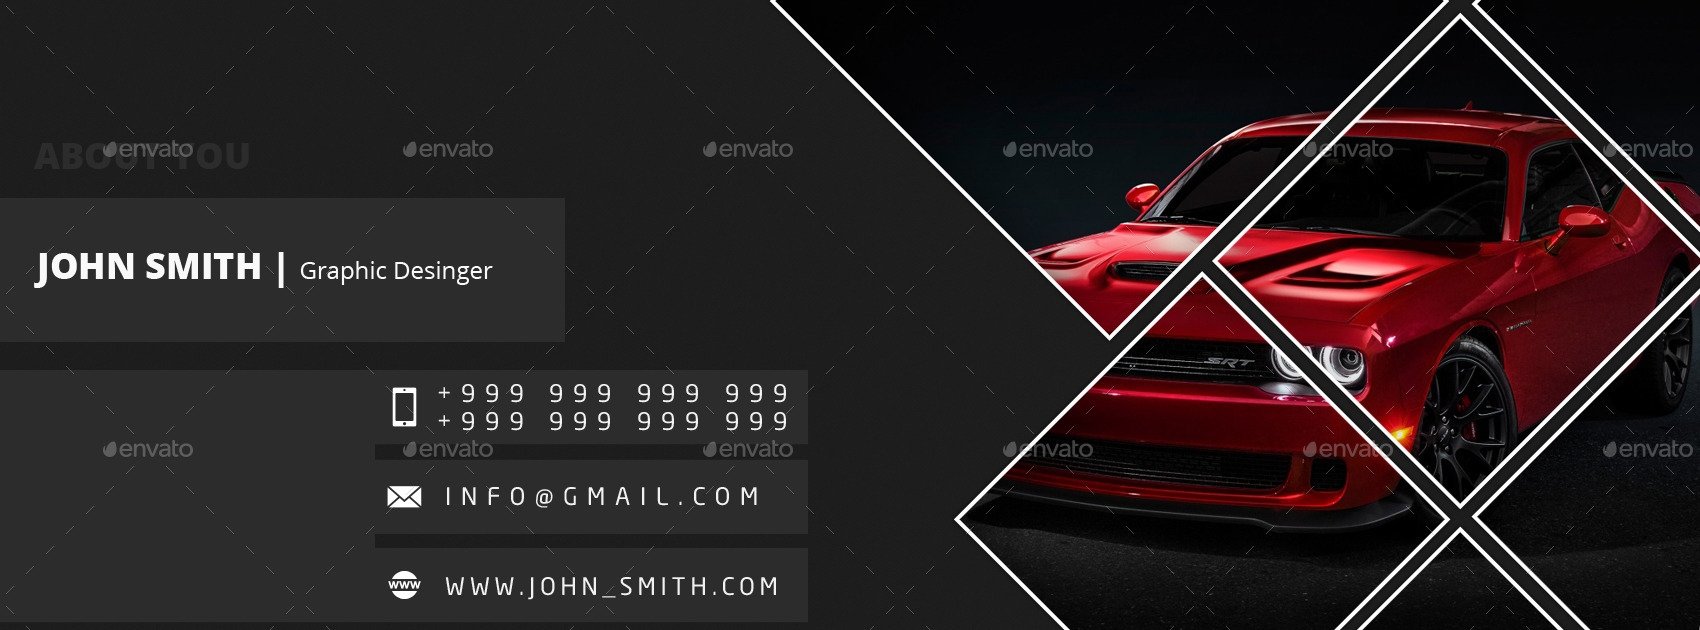 01 Style Light And Dark Facebook Cover Templates By Hythamalsha3r